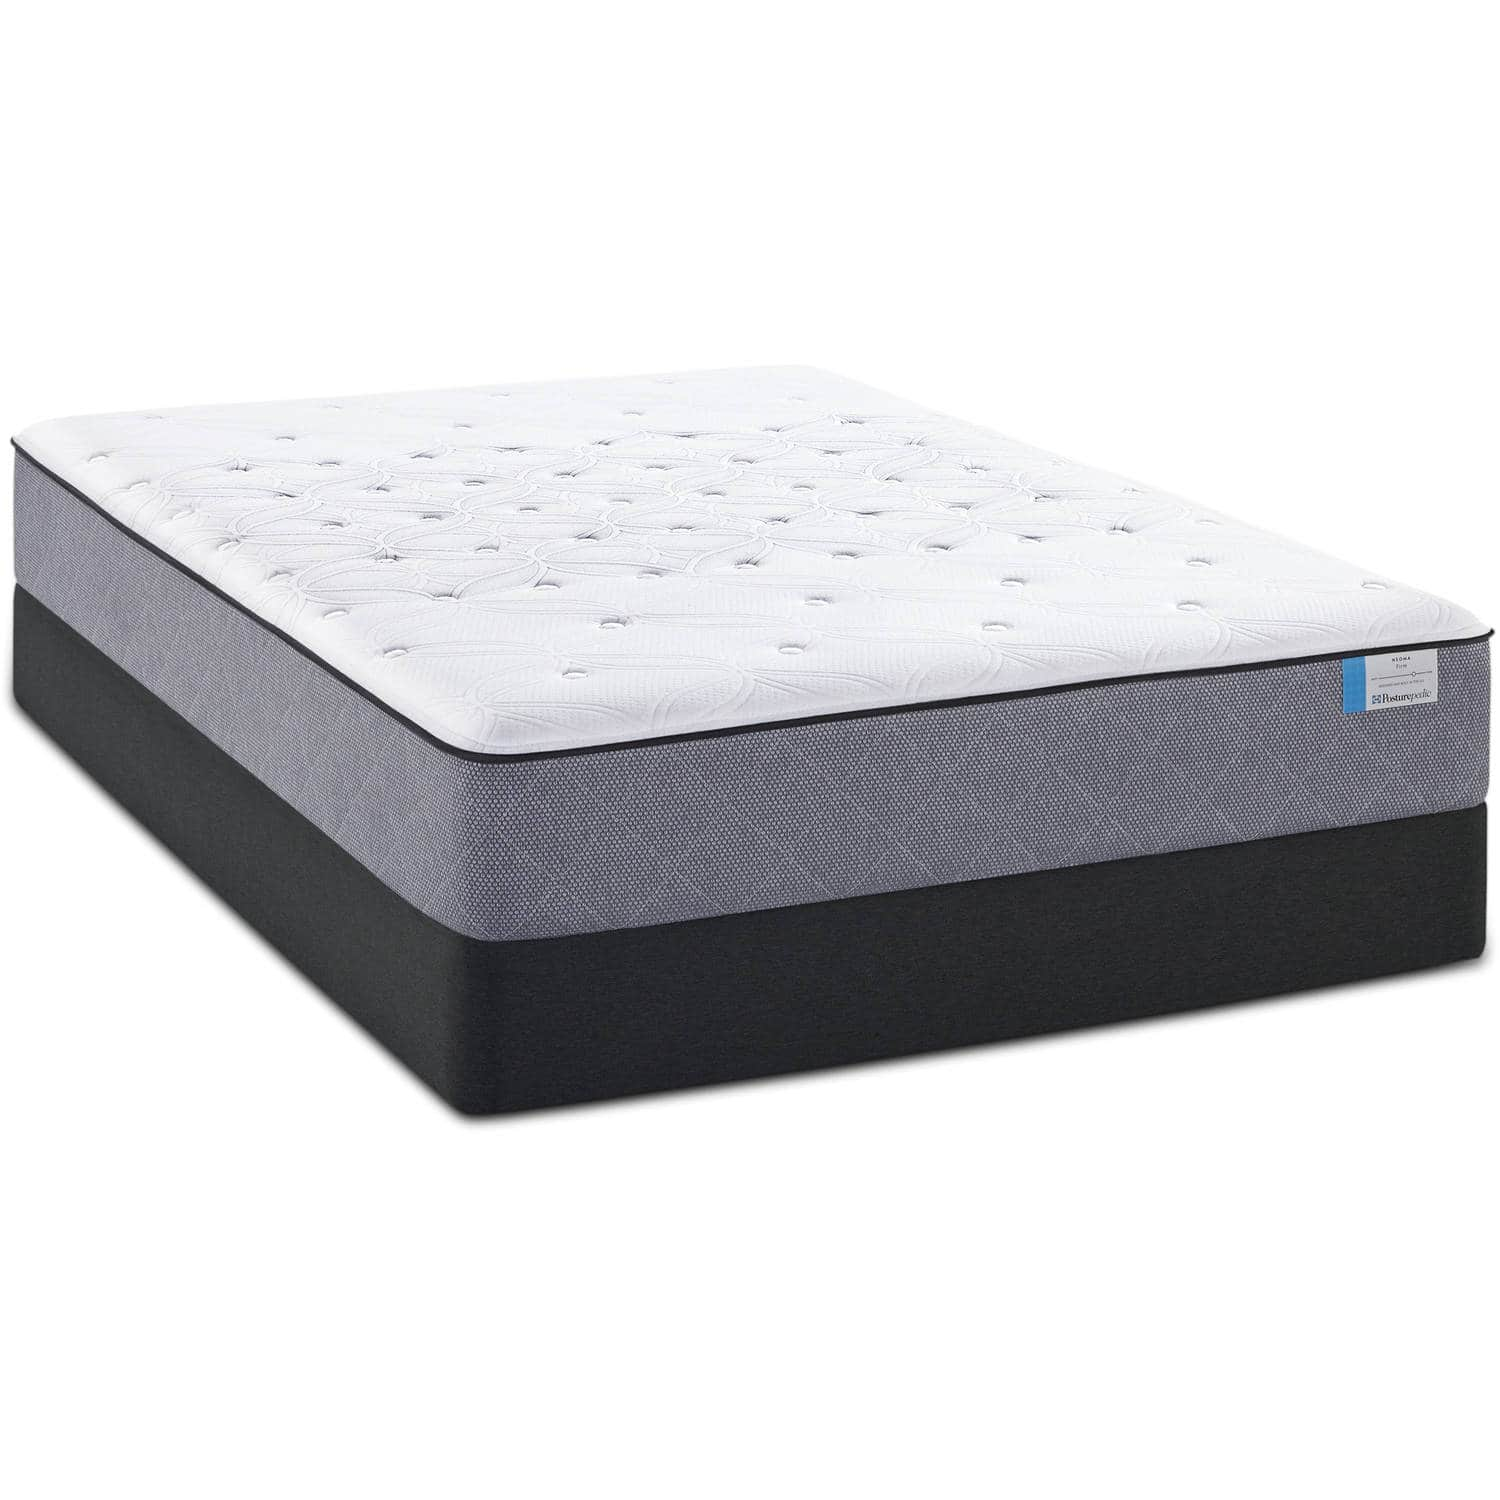 Sealy Posturepedic Firm Chalone Mattress (California King) - $188.30 Walmart OOS!